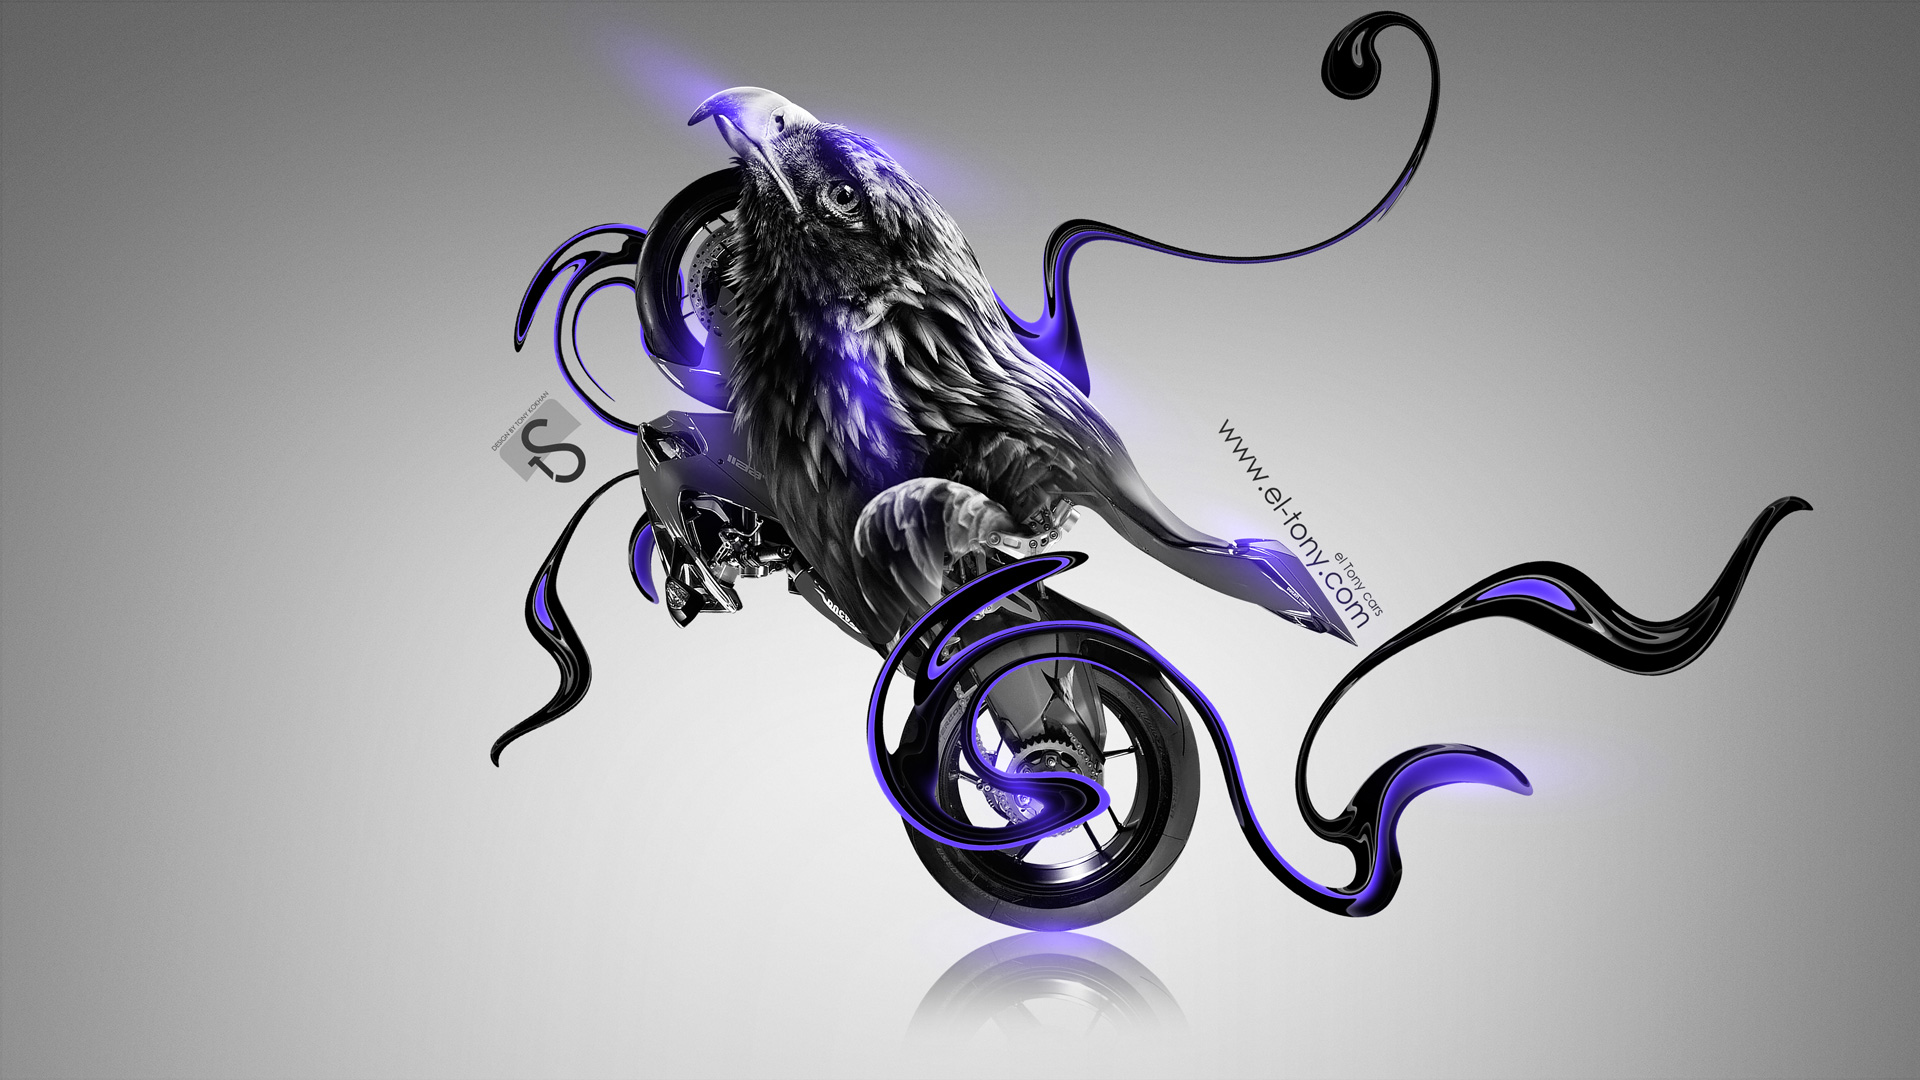 Wonderful ... Moto Ducati 1199 Fantasy Bird Bike 2014 Violet